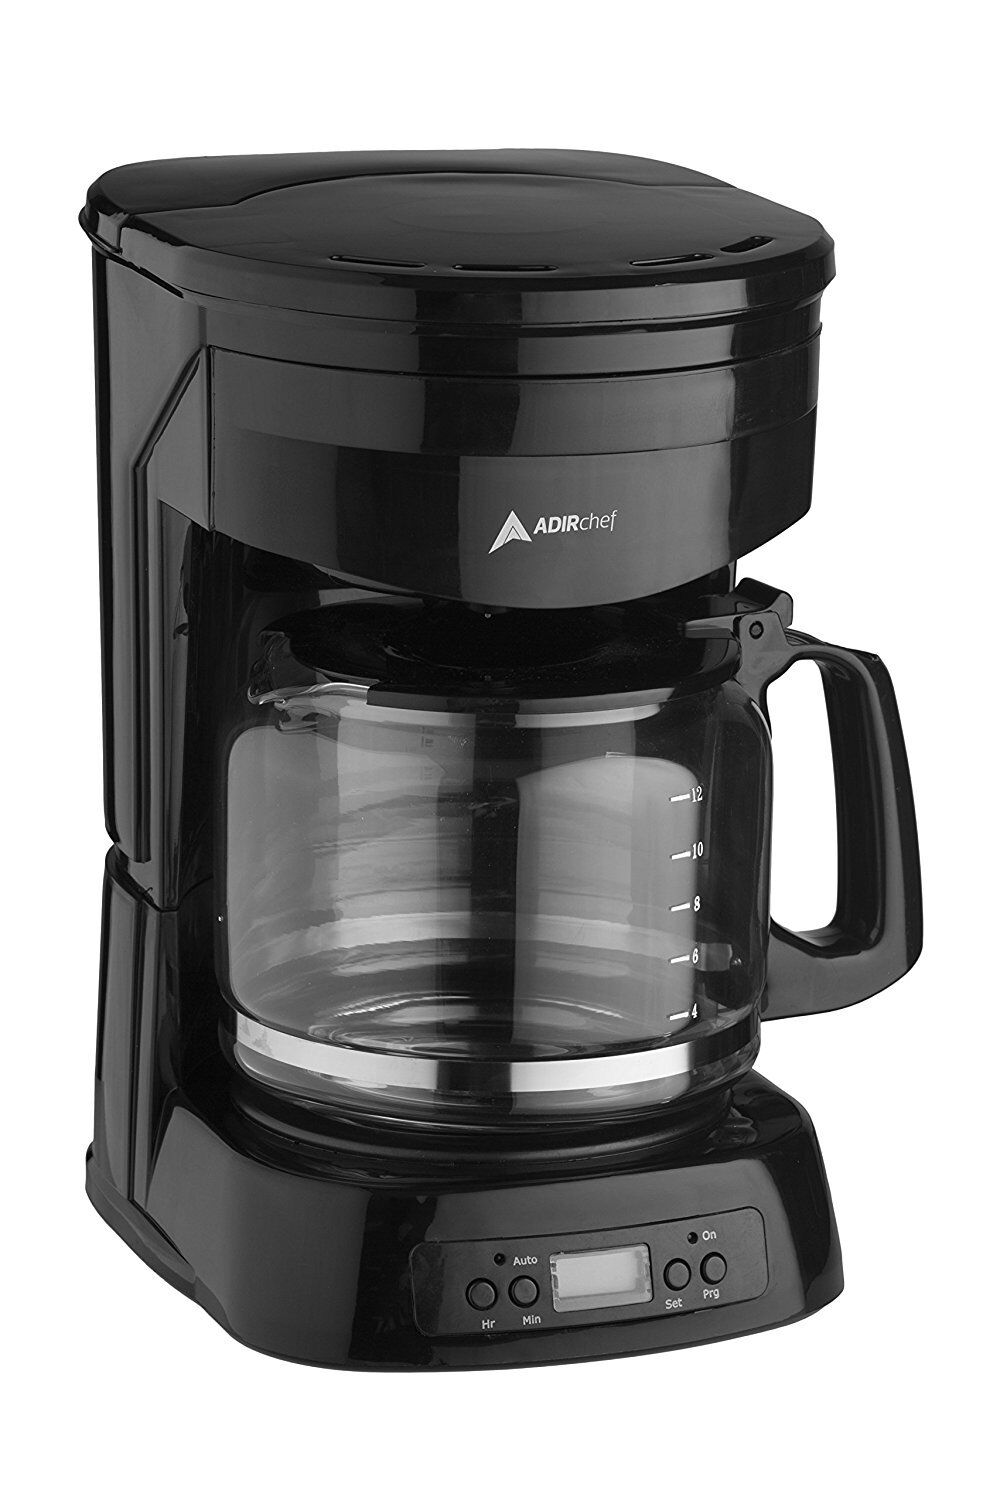 AdirChef 12 Cup Coffee Maker Glass Carafe Easy Fill Easy Clean Coffee Maker